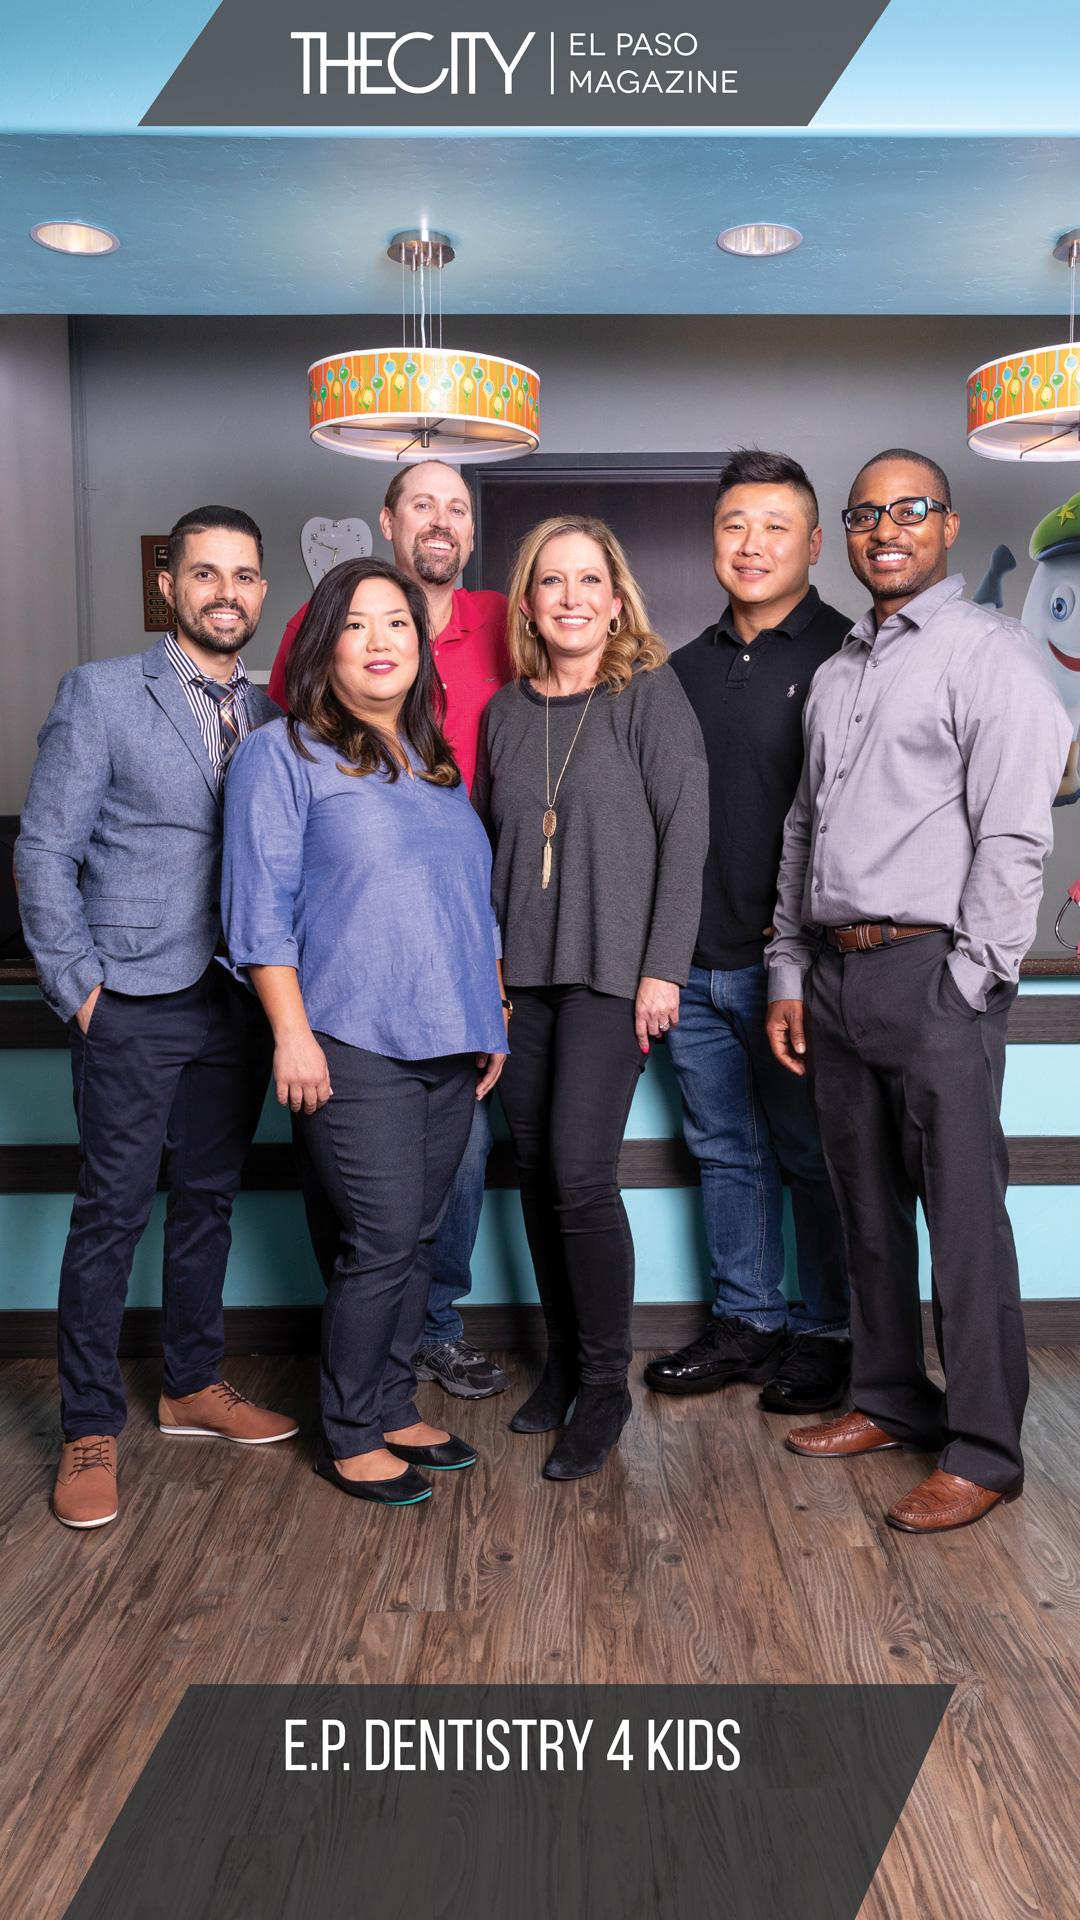 LOCALLY OWNED BUSINESS: E.P. DENTISTRY 4 KIDS